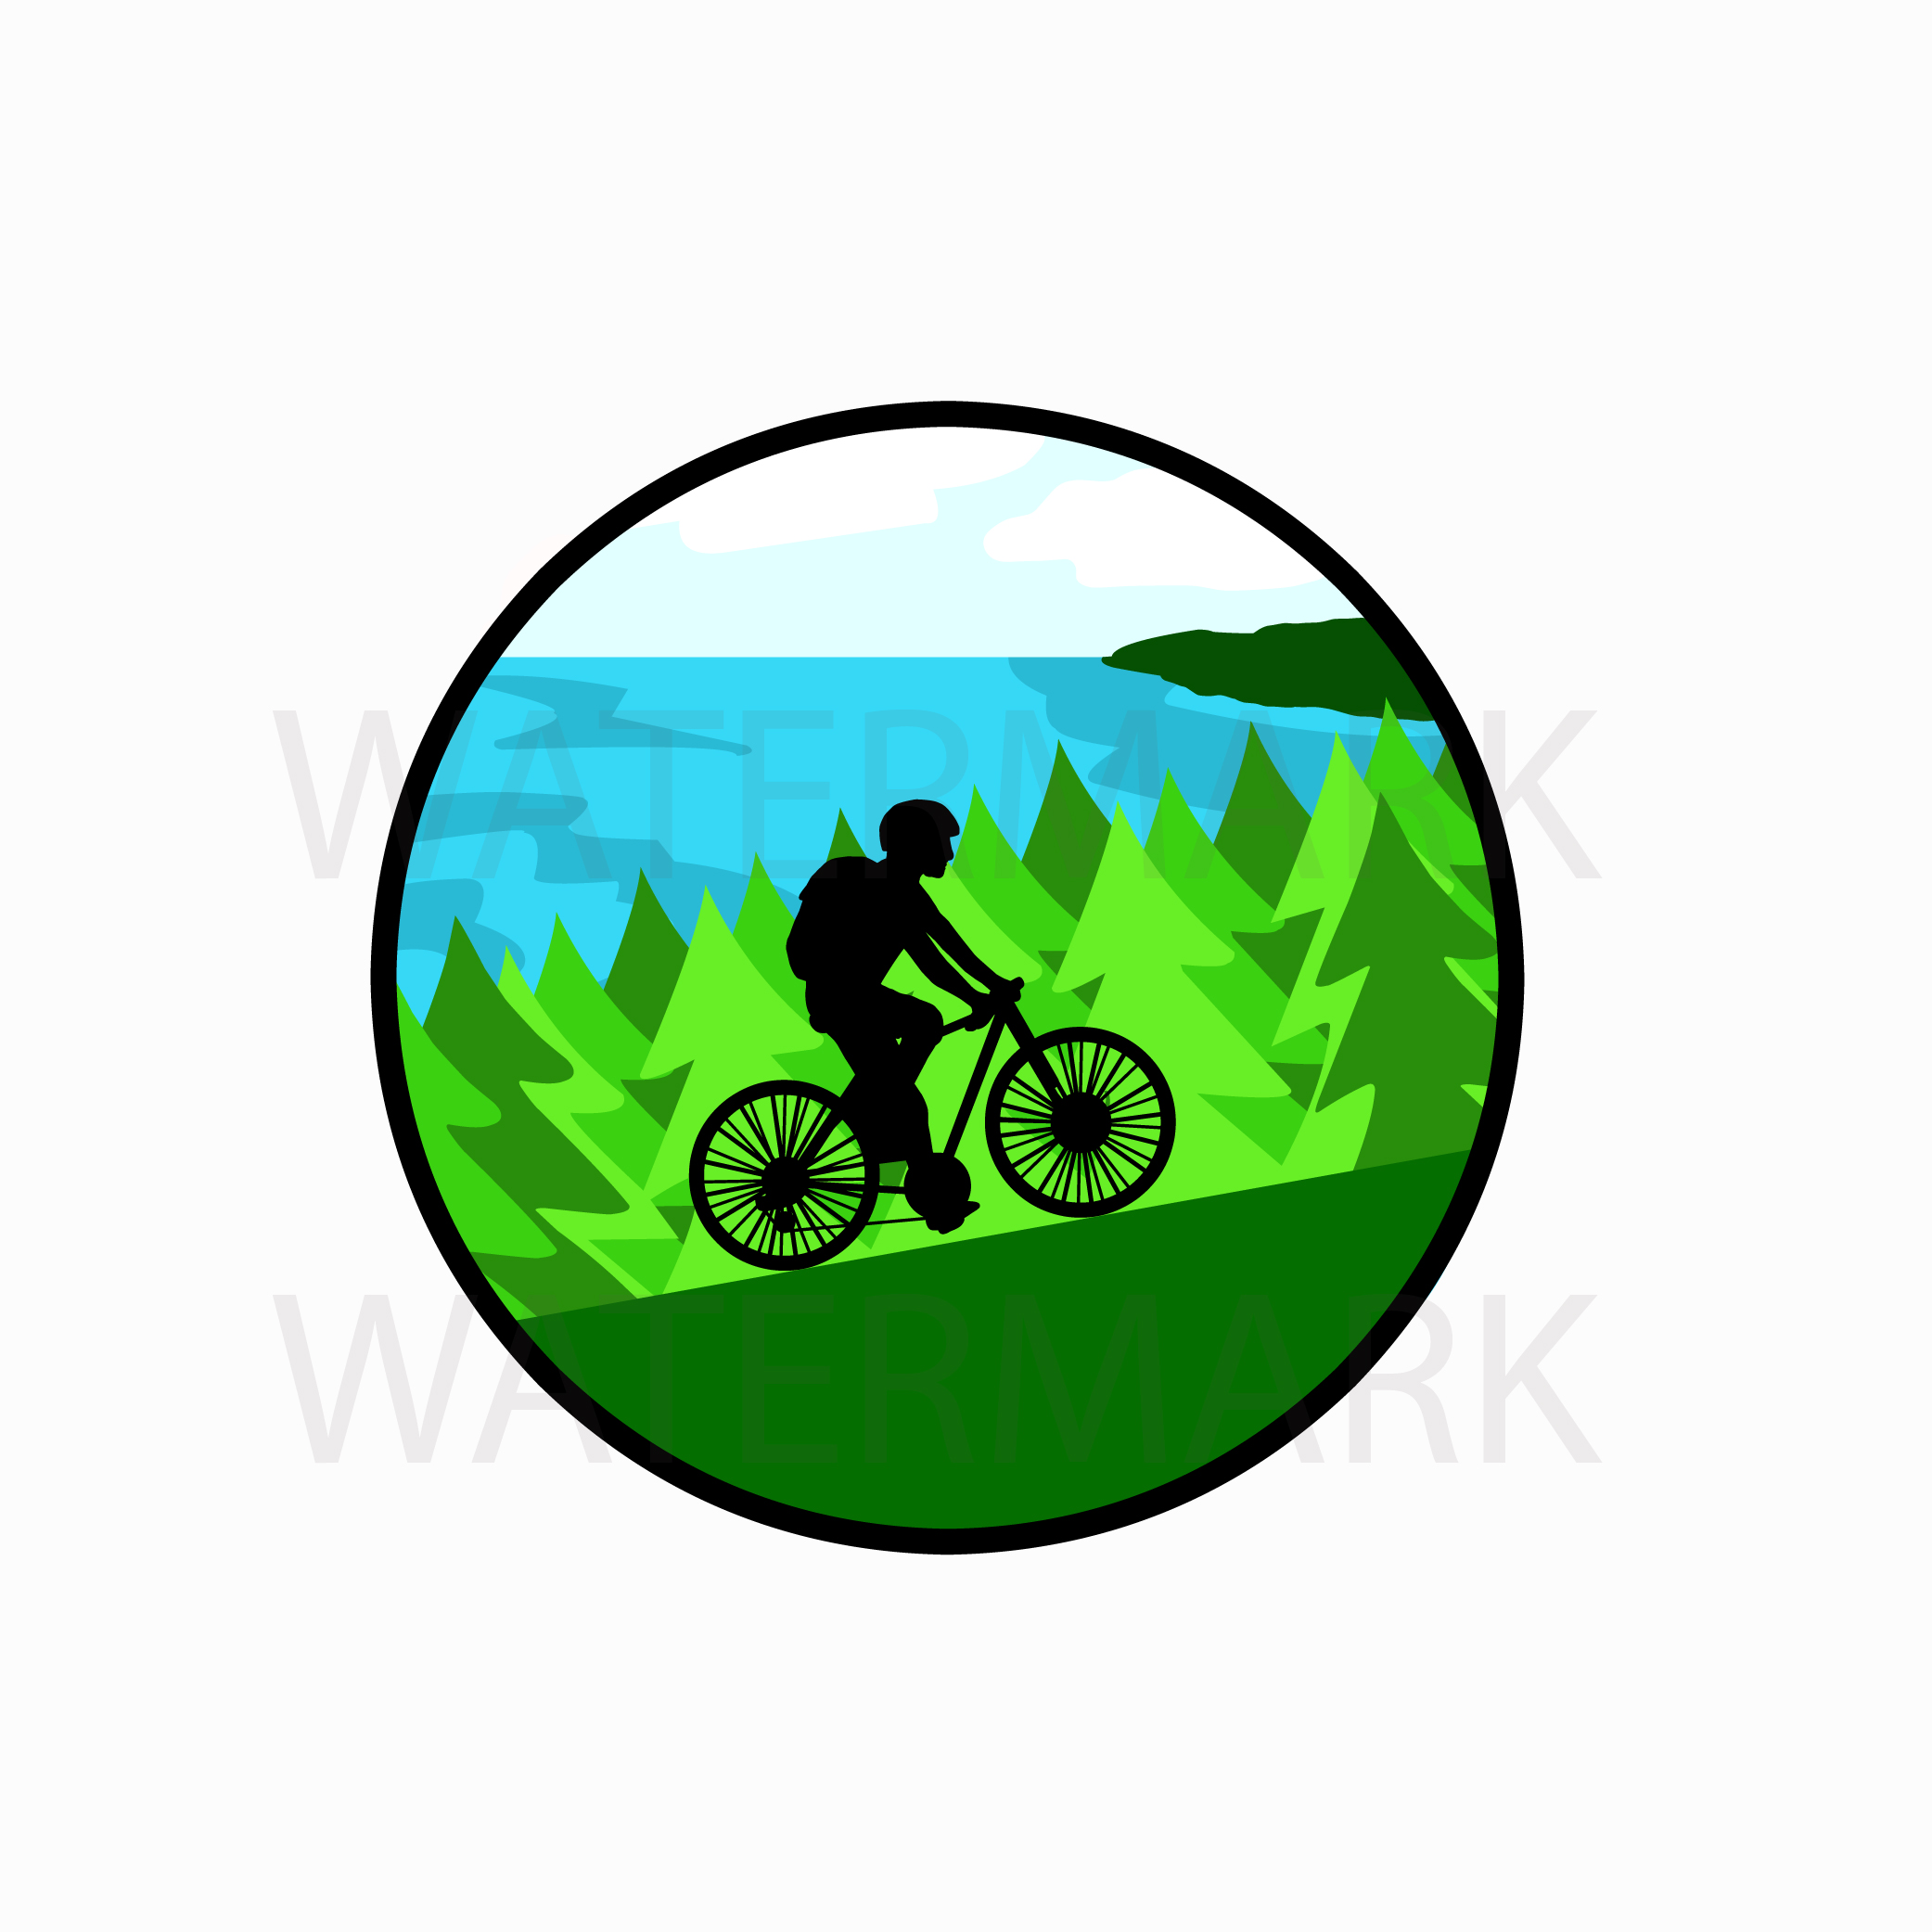 Bike on mountain by the lake with pine trees - SVG/JPG/PNG Hand Drawing example image 1